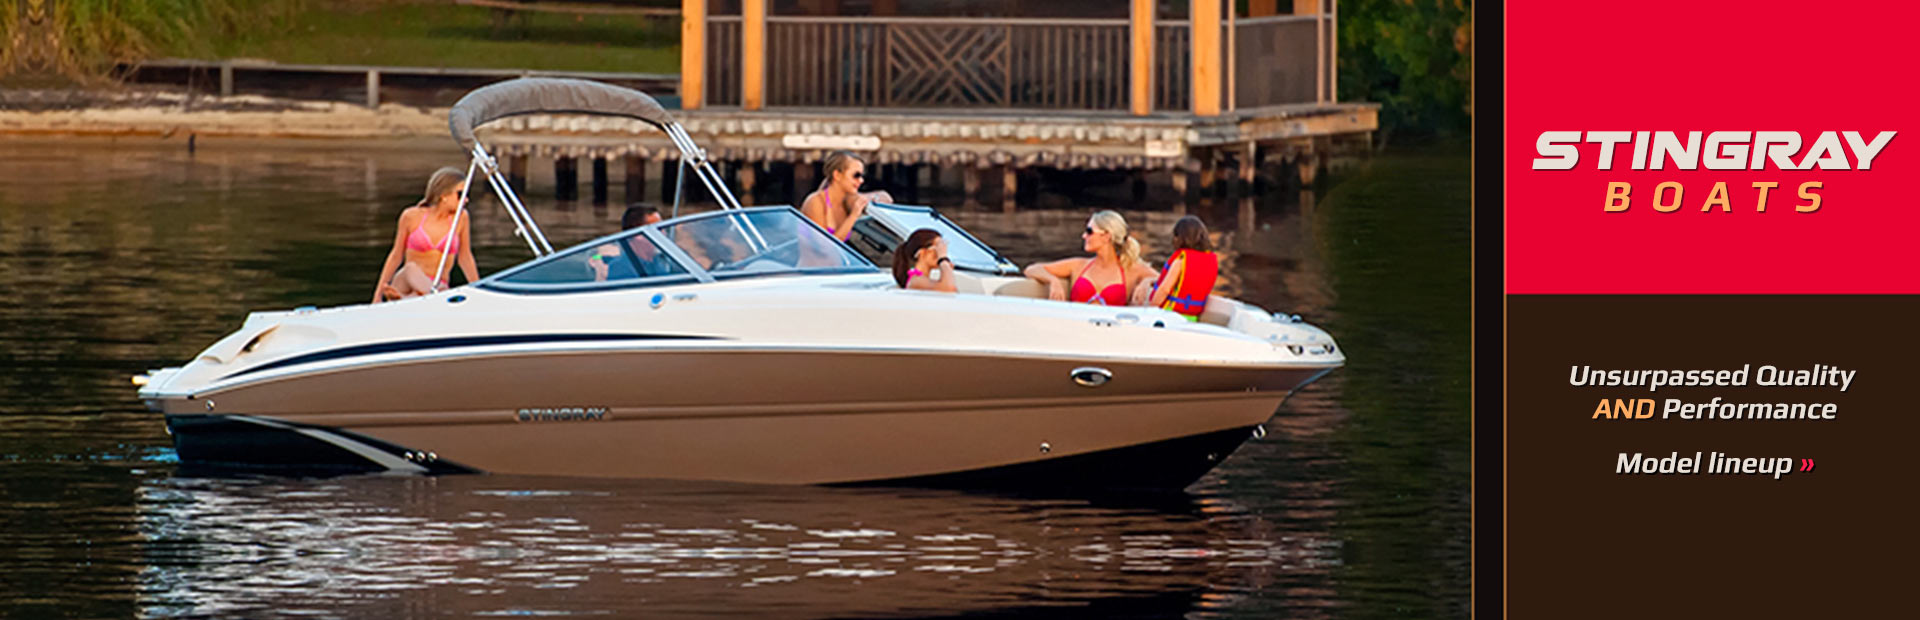 Click here to shop our selection of Stingray boats!